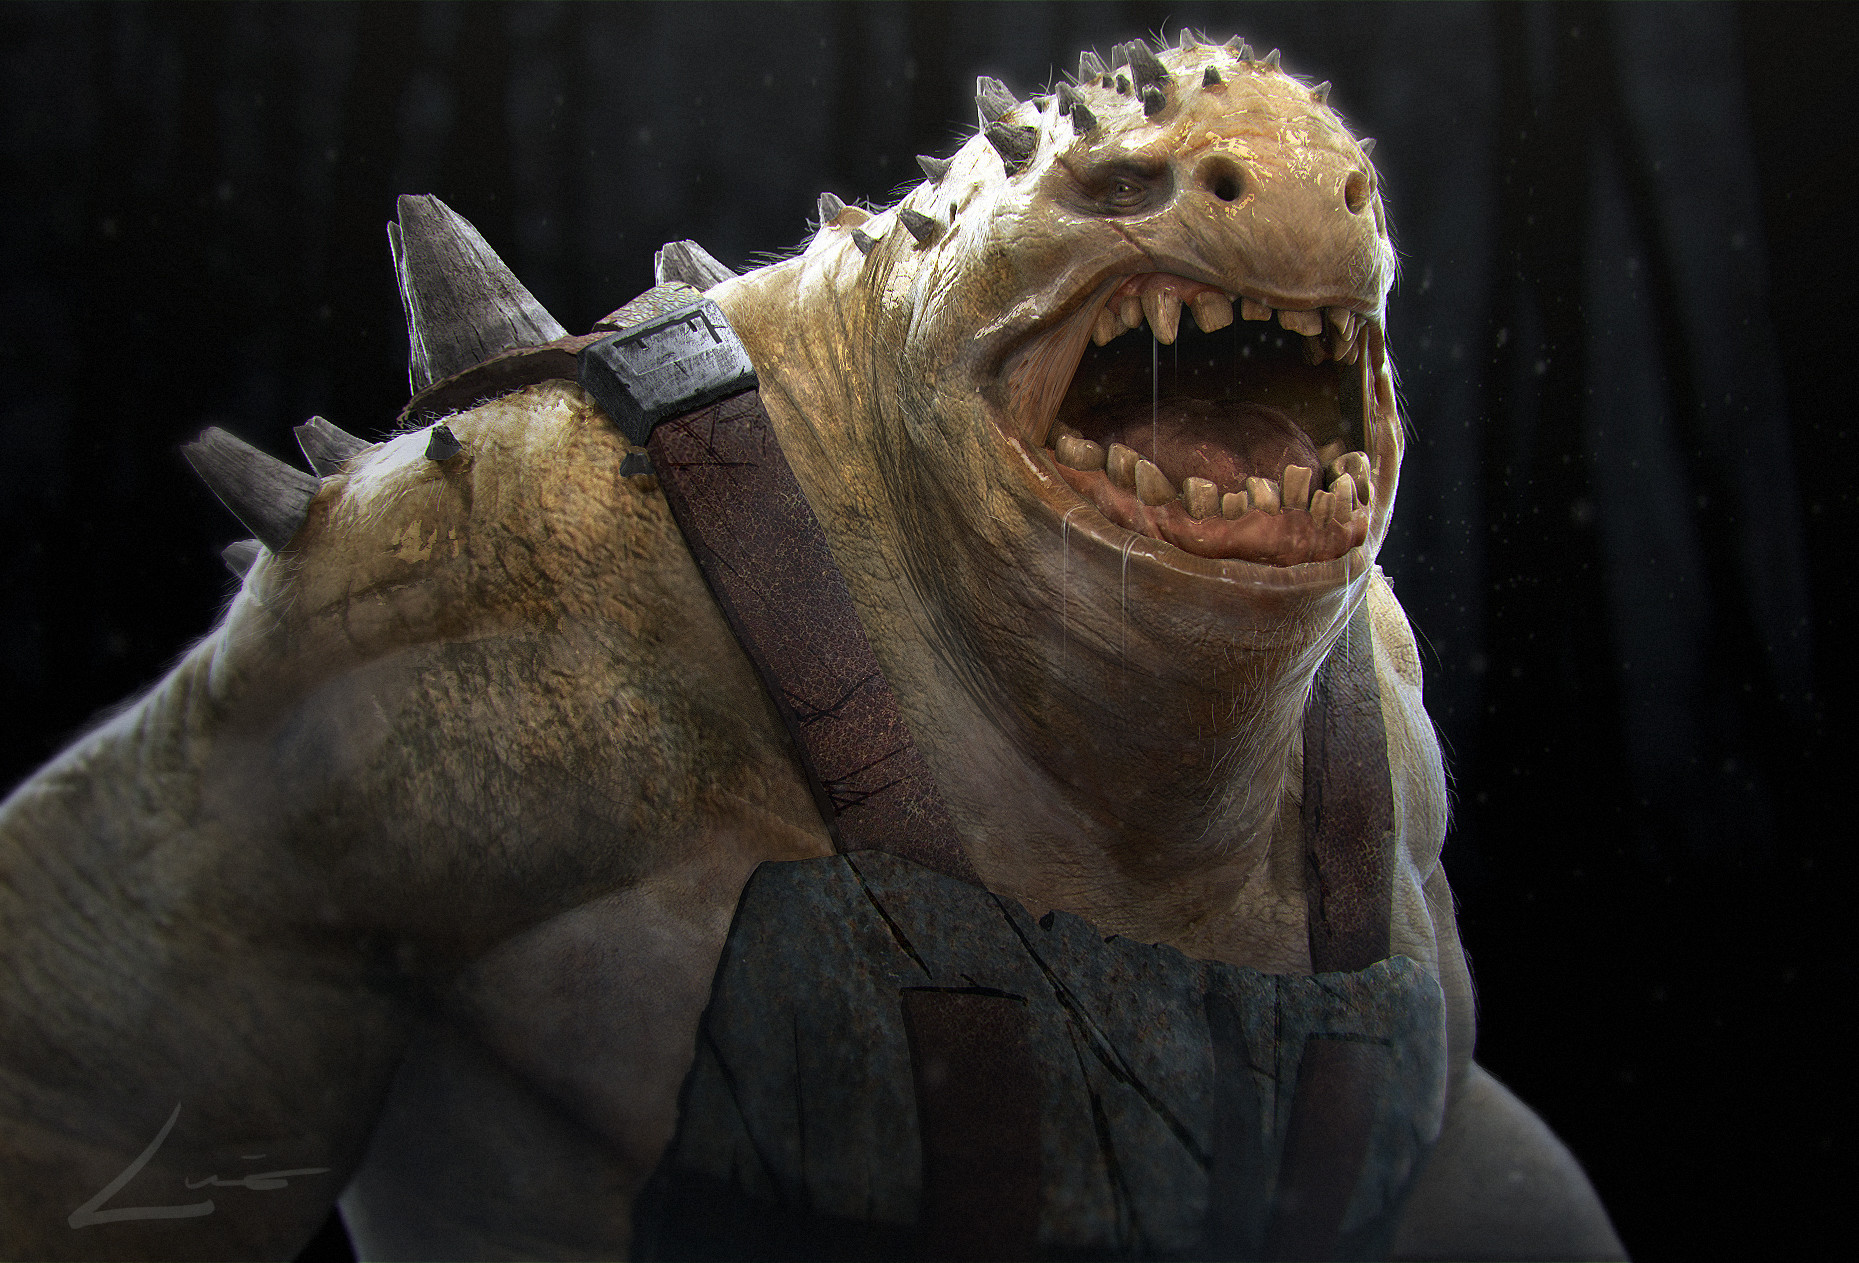 Luis carrasco 3d creature design